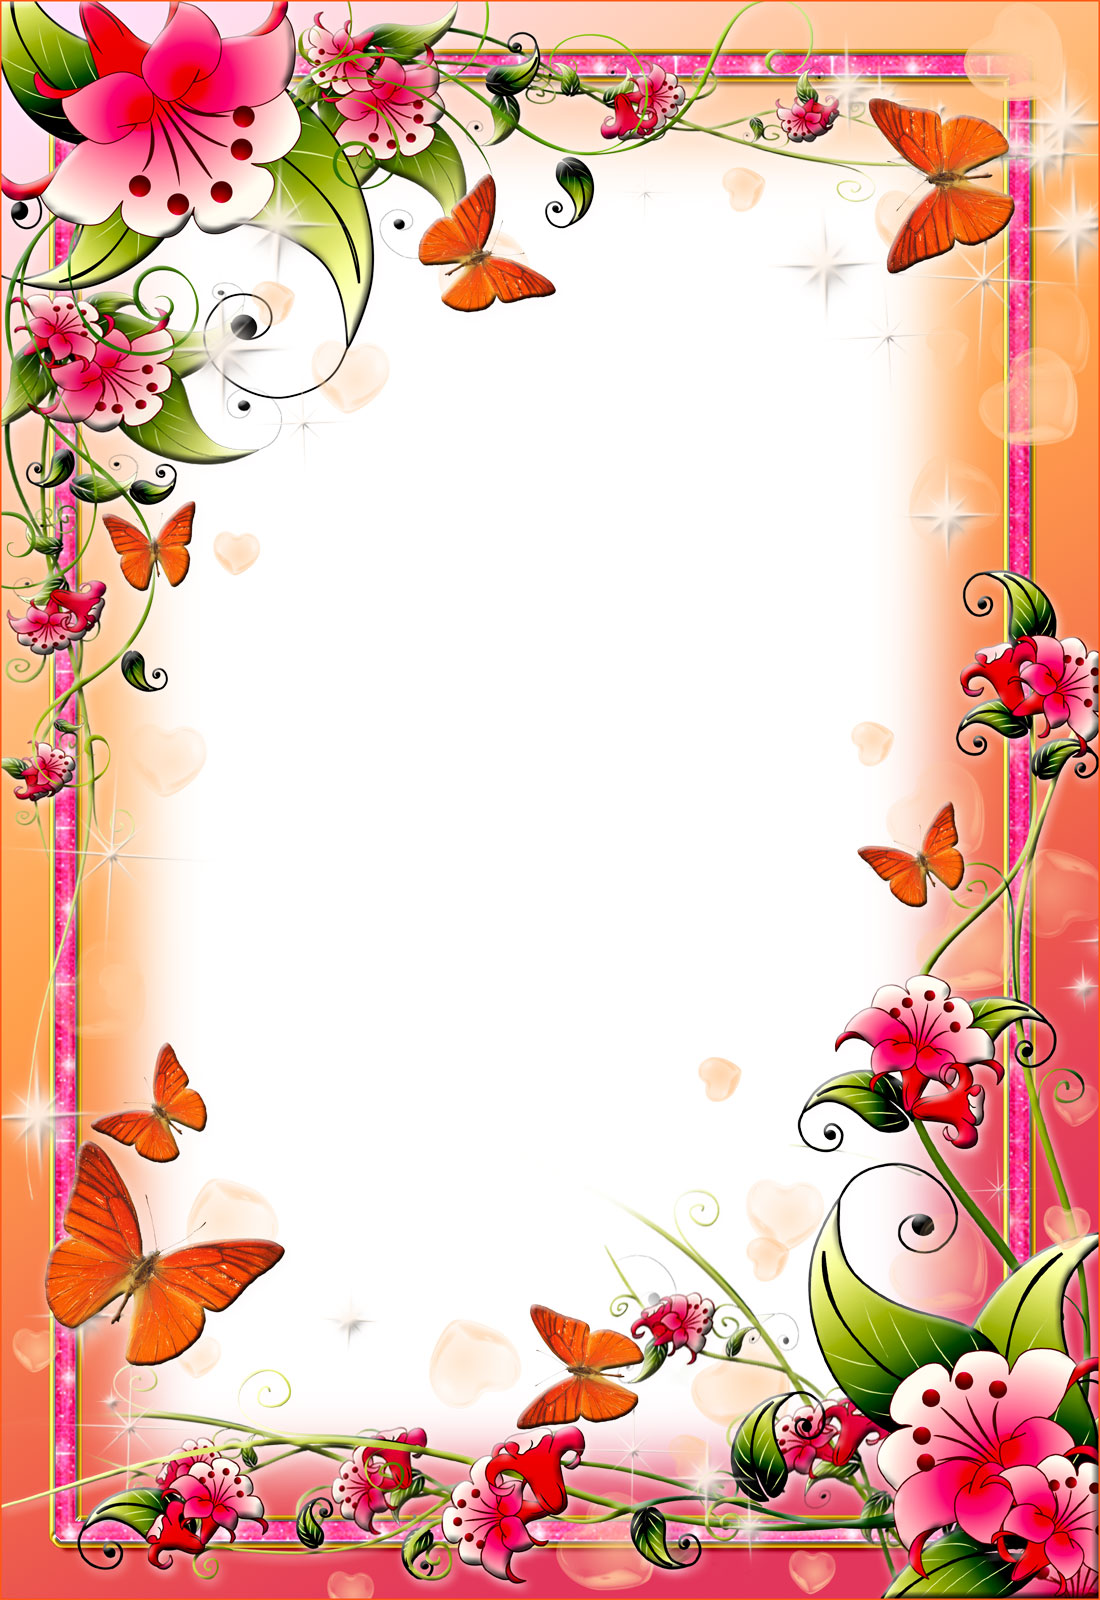 45 Wallpaper Borders With Flowers On Wallpapersafari